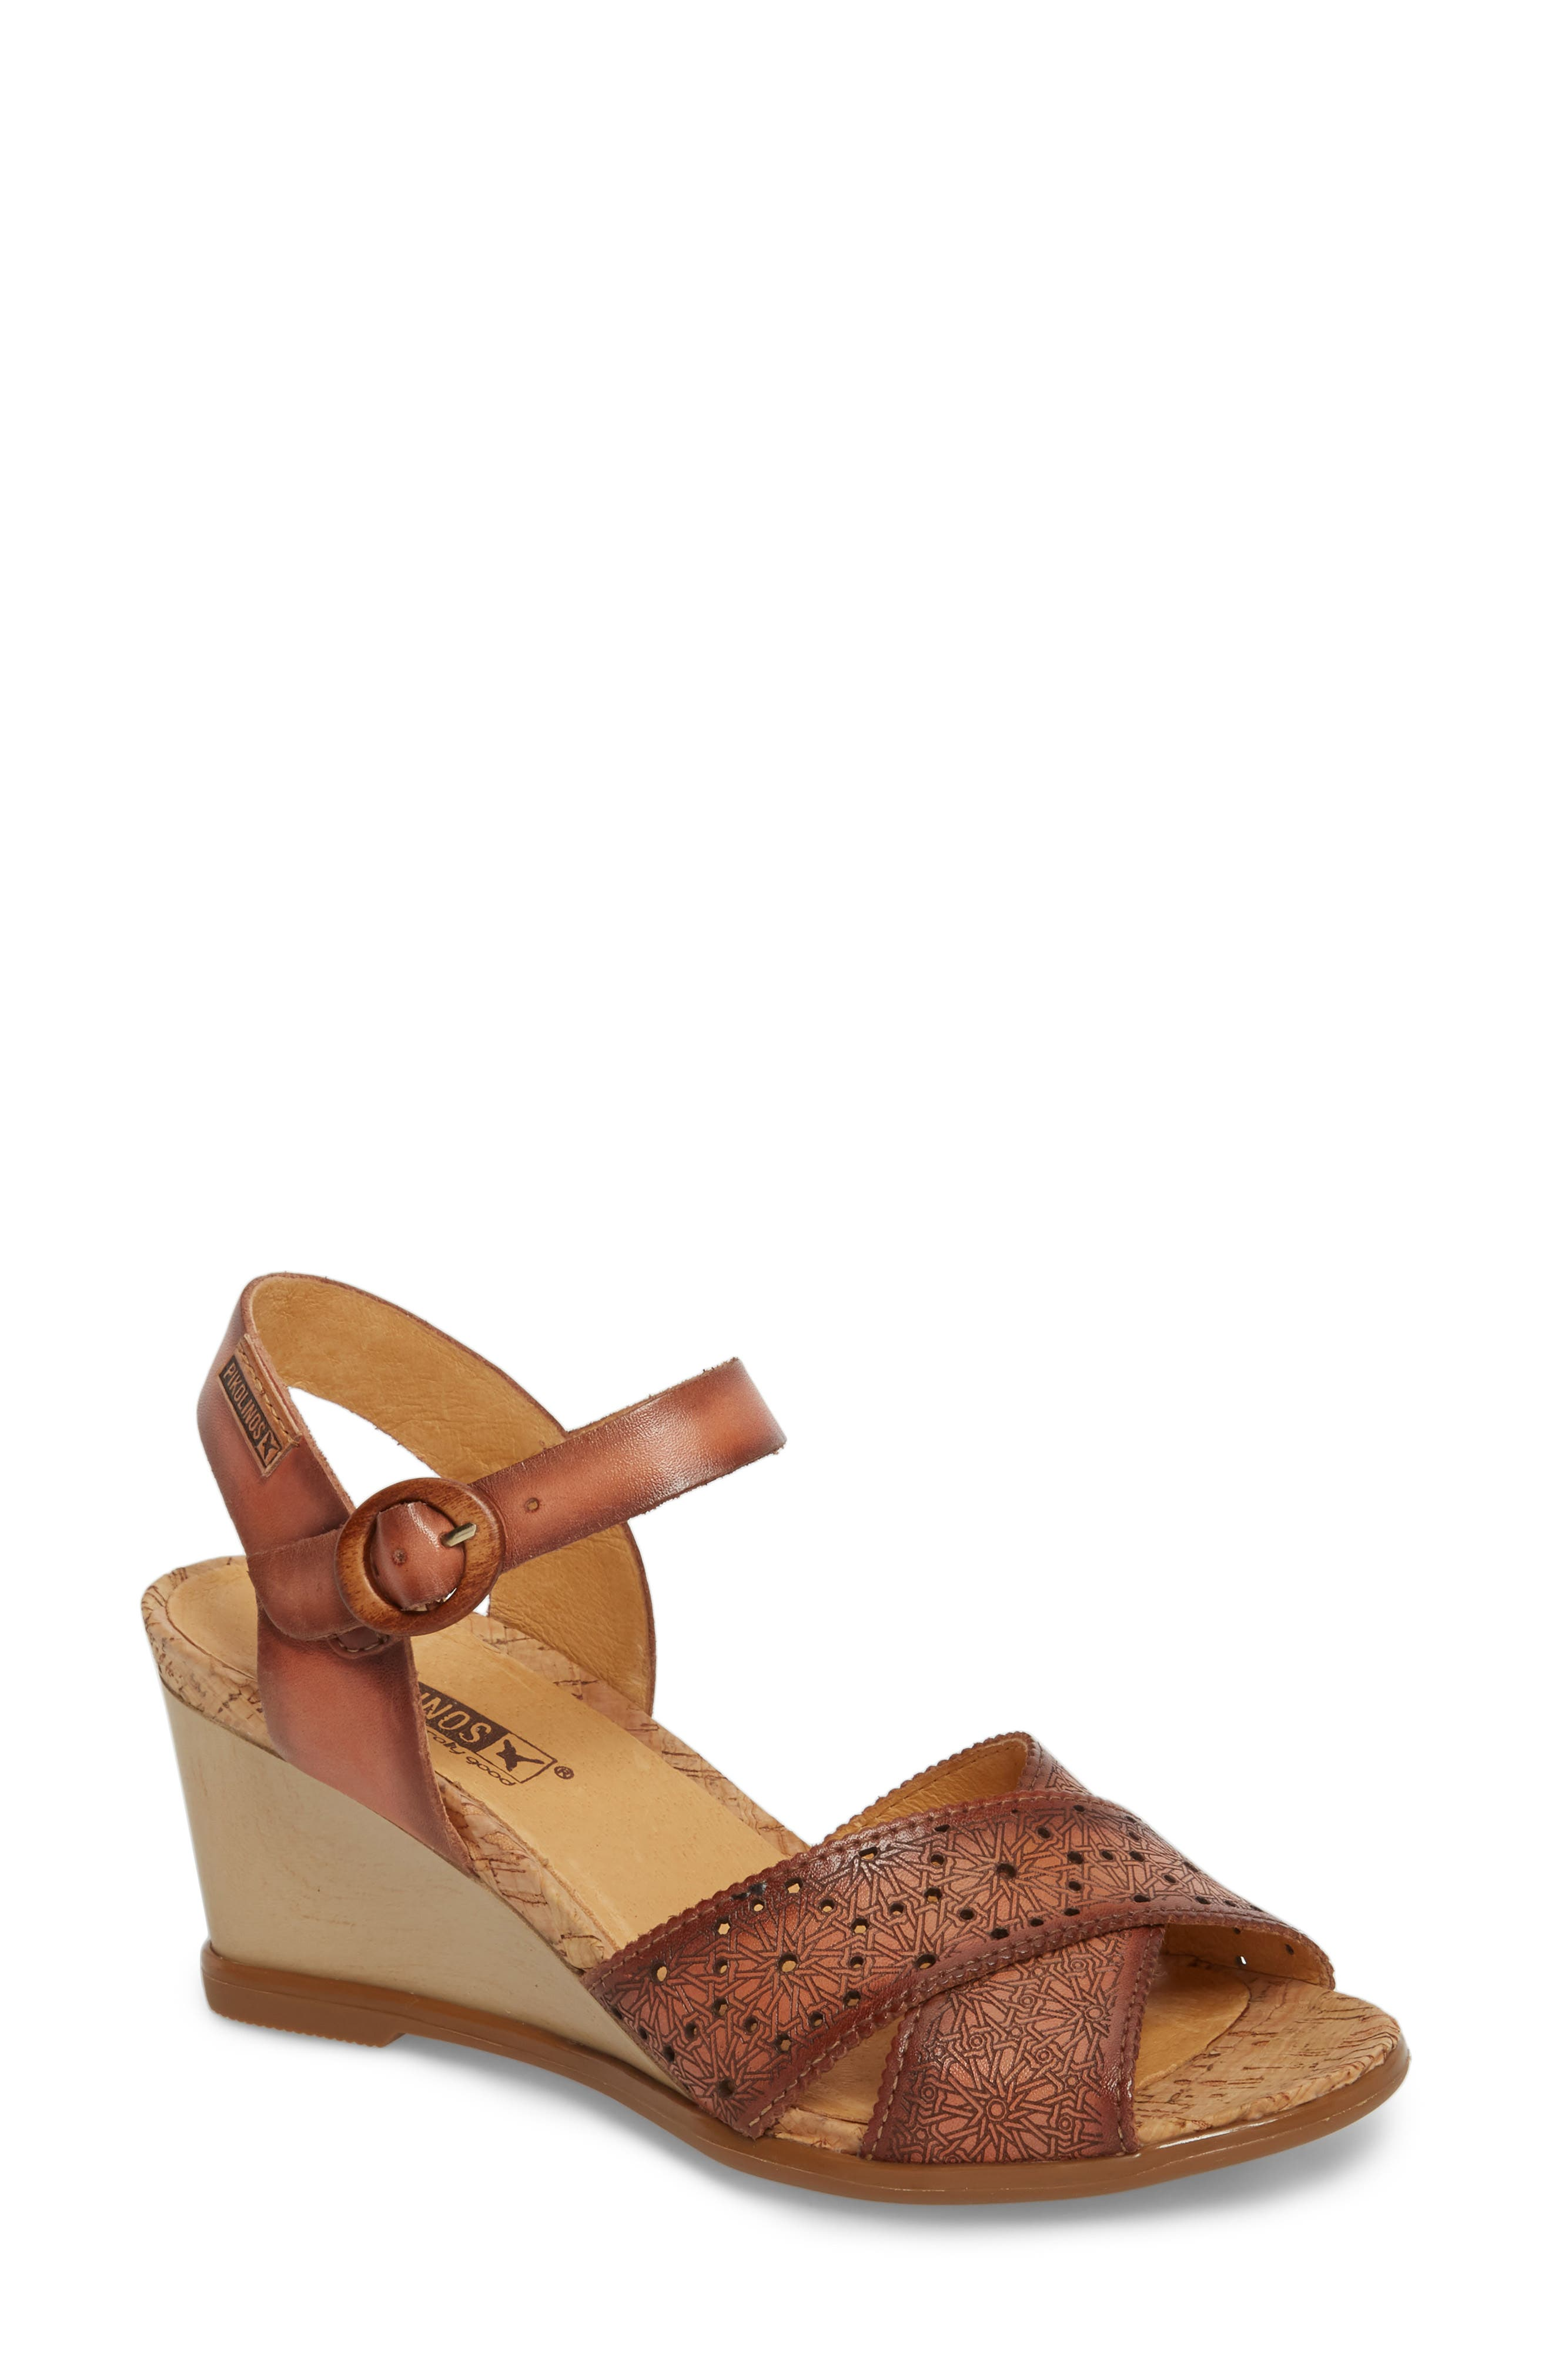 Vigo Wedge Sandal,                         Main,                         color, FLAMINGO LEATHER